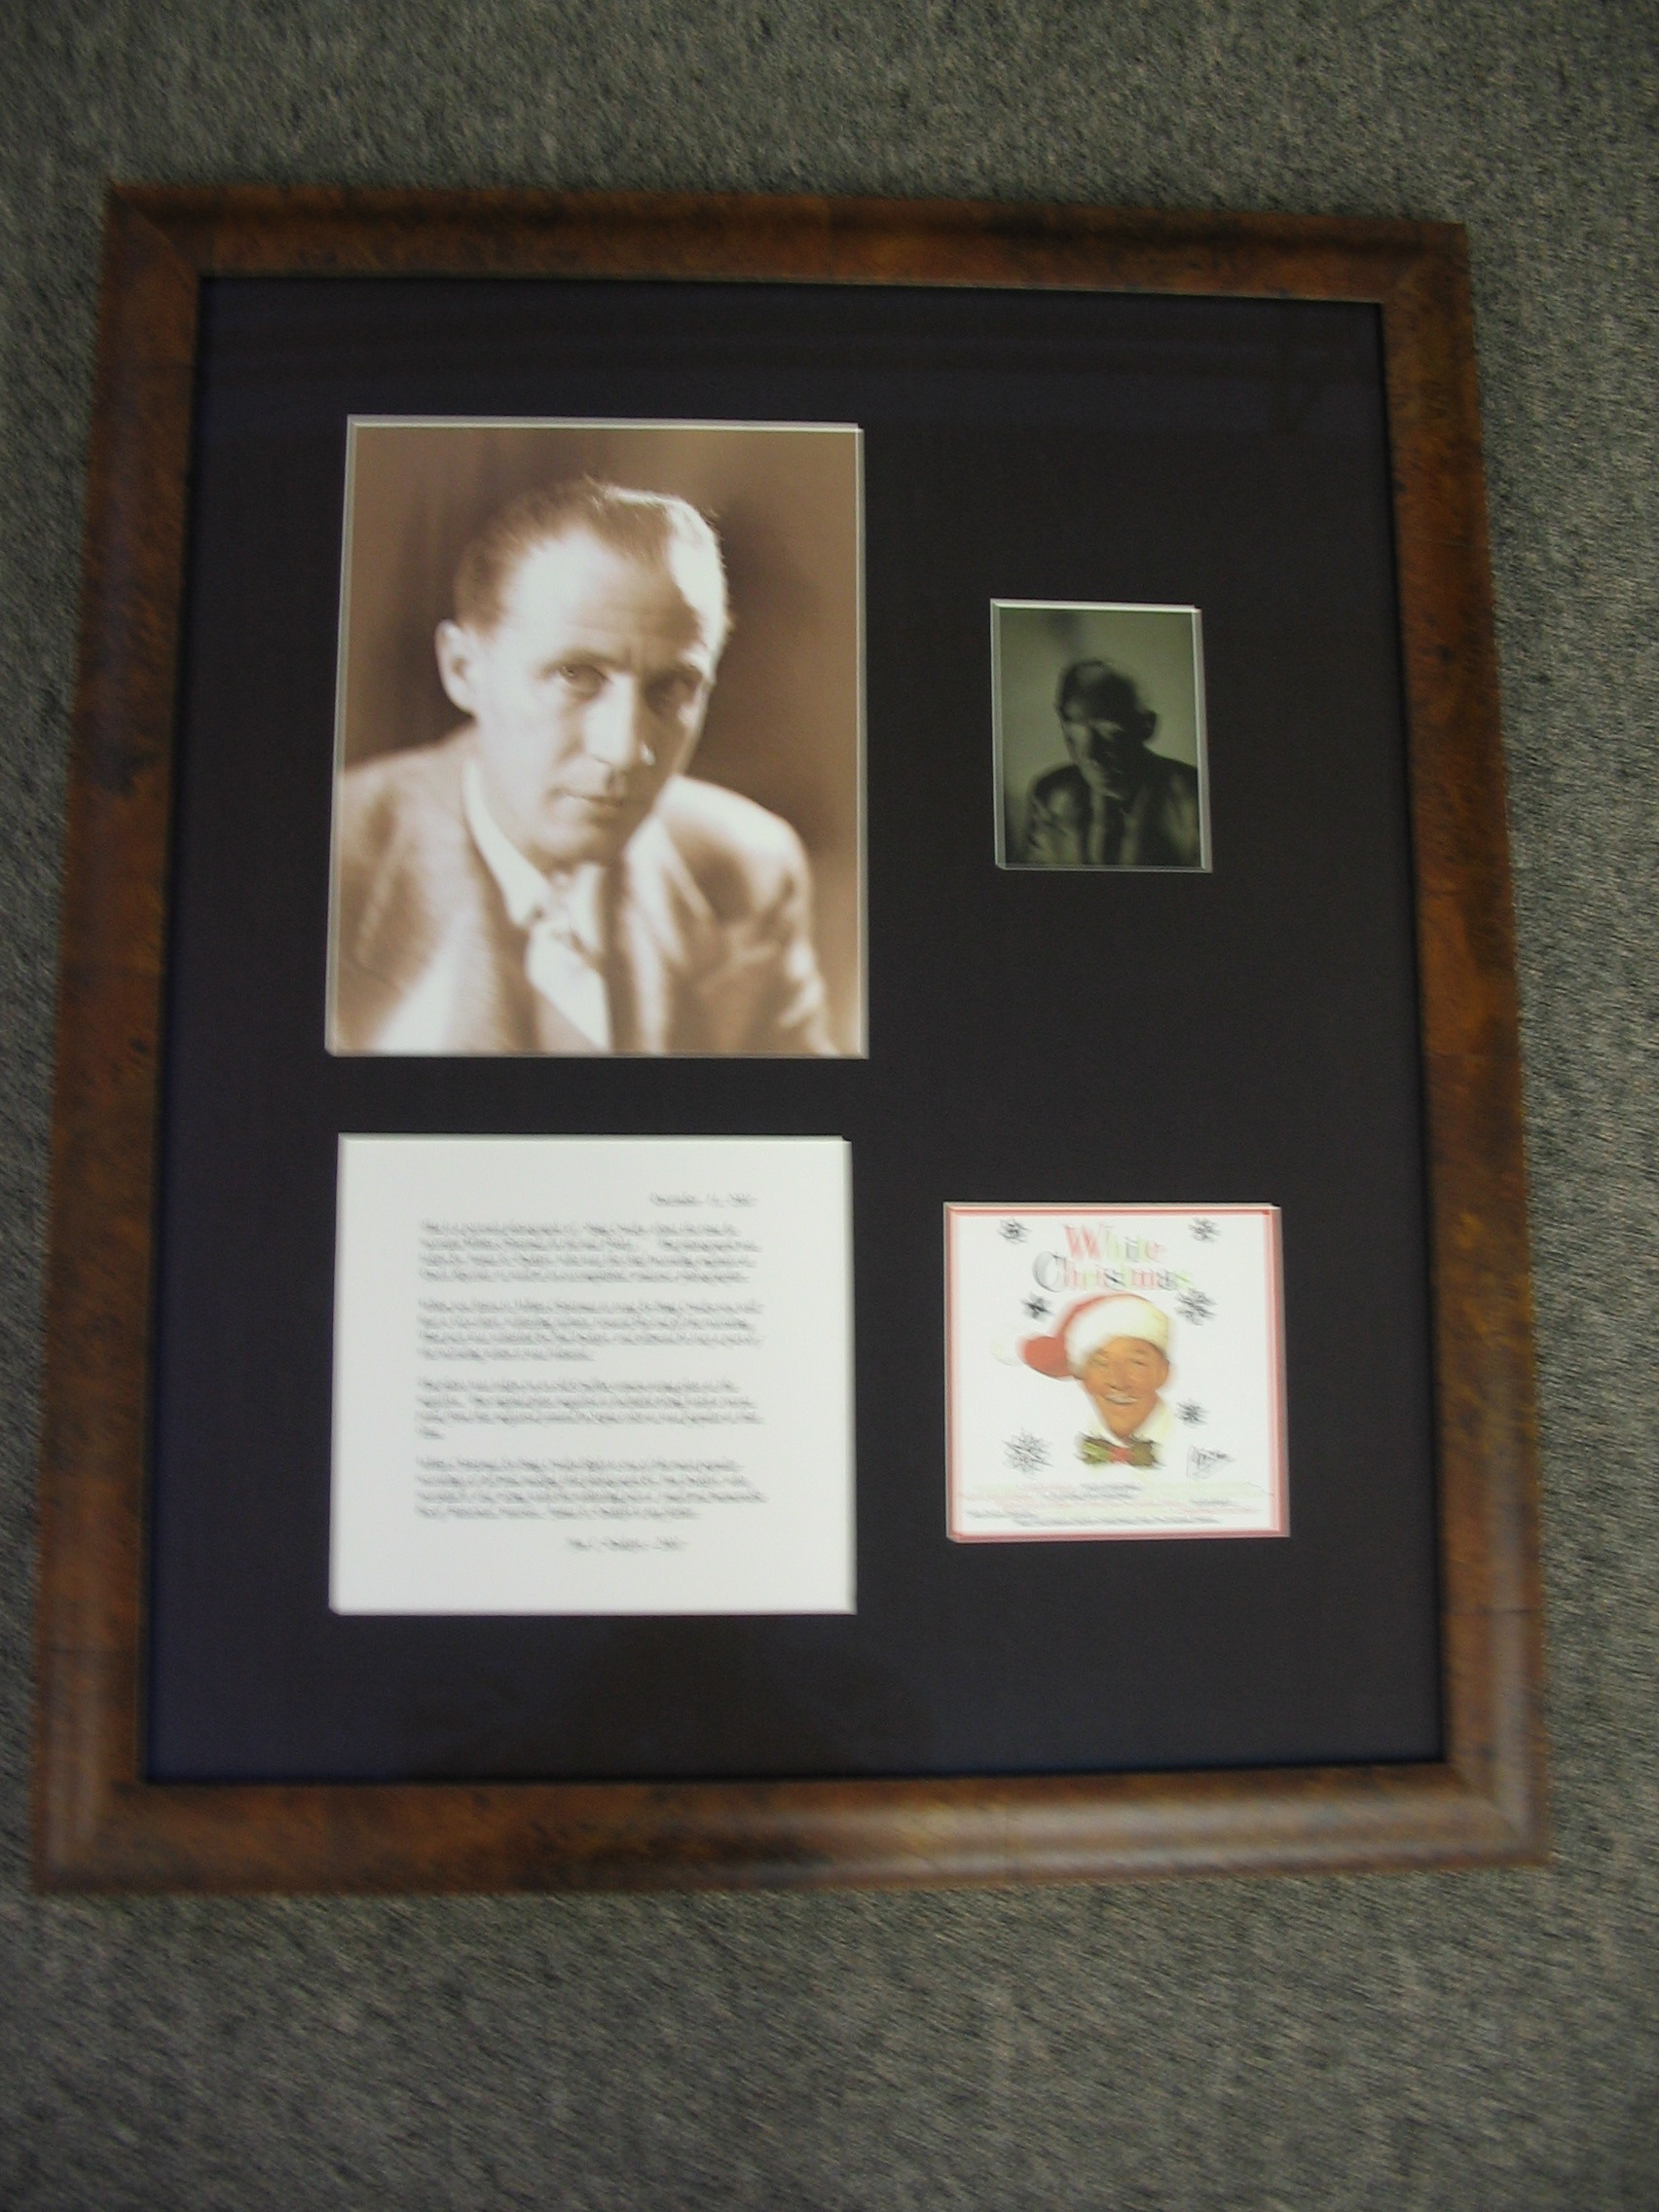 Historical picture framed by The Framemakers